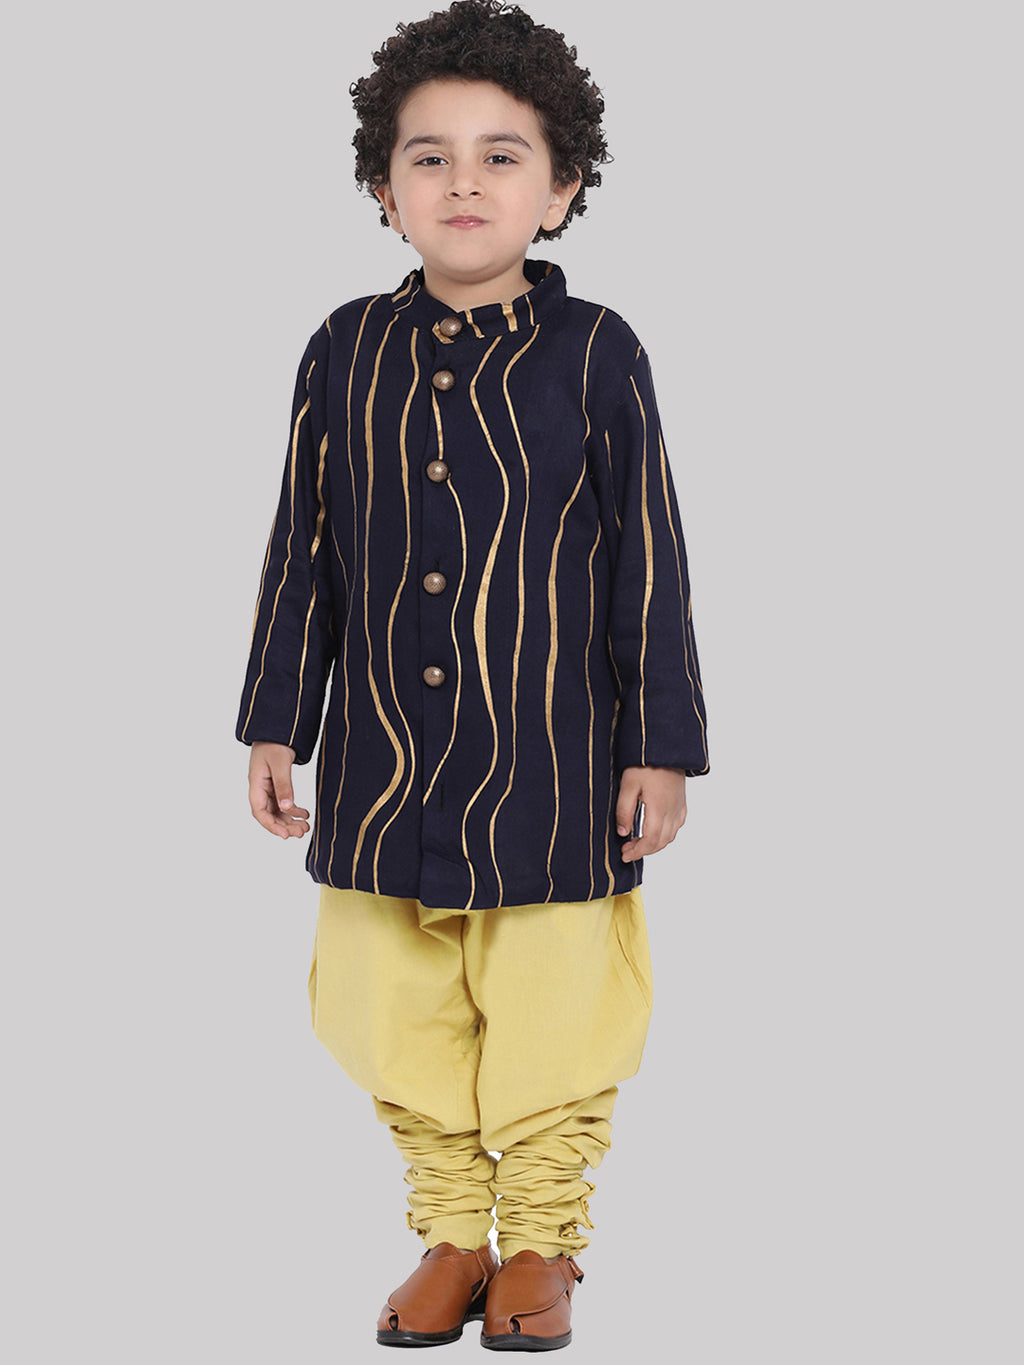 Nakul Sherwani set for boys